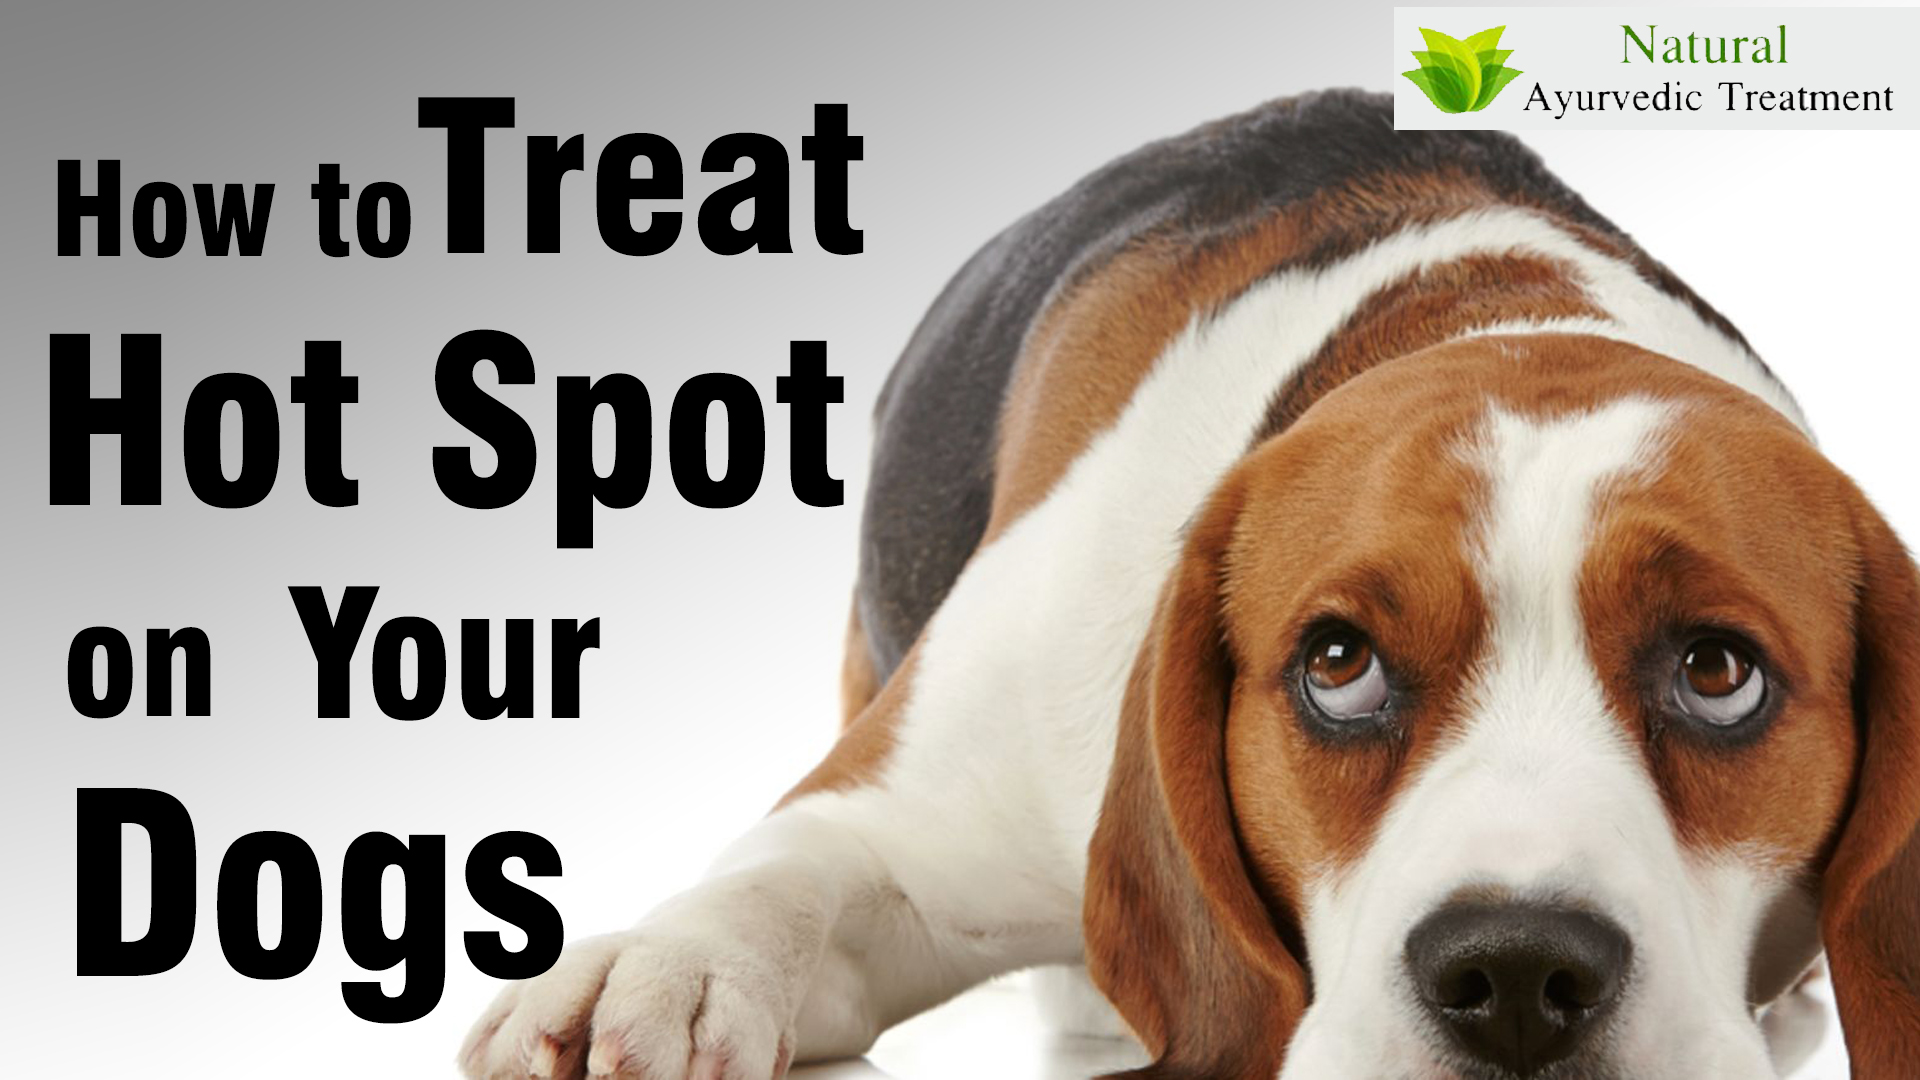 How to Treat Hot Spots on Your Dogs